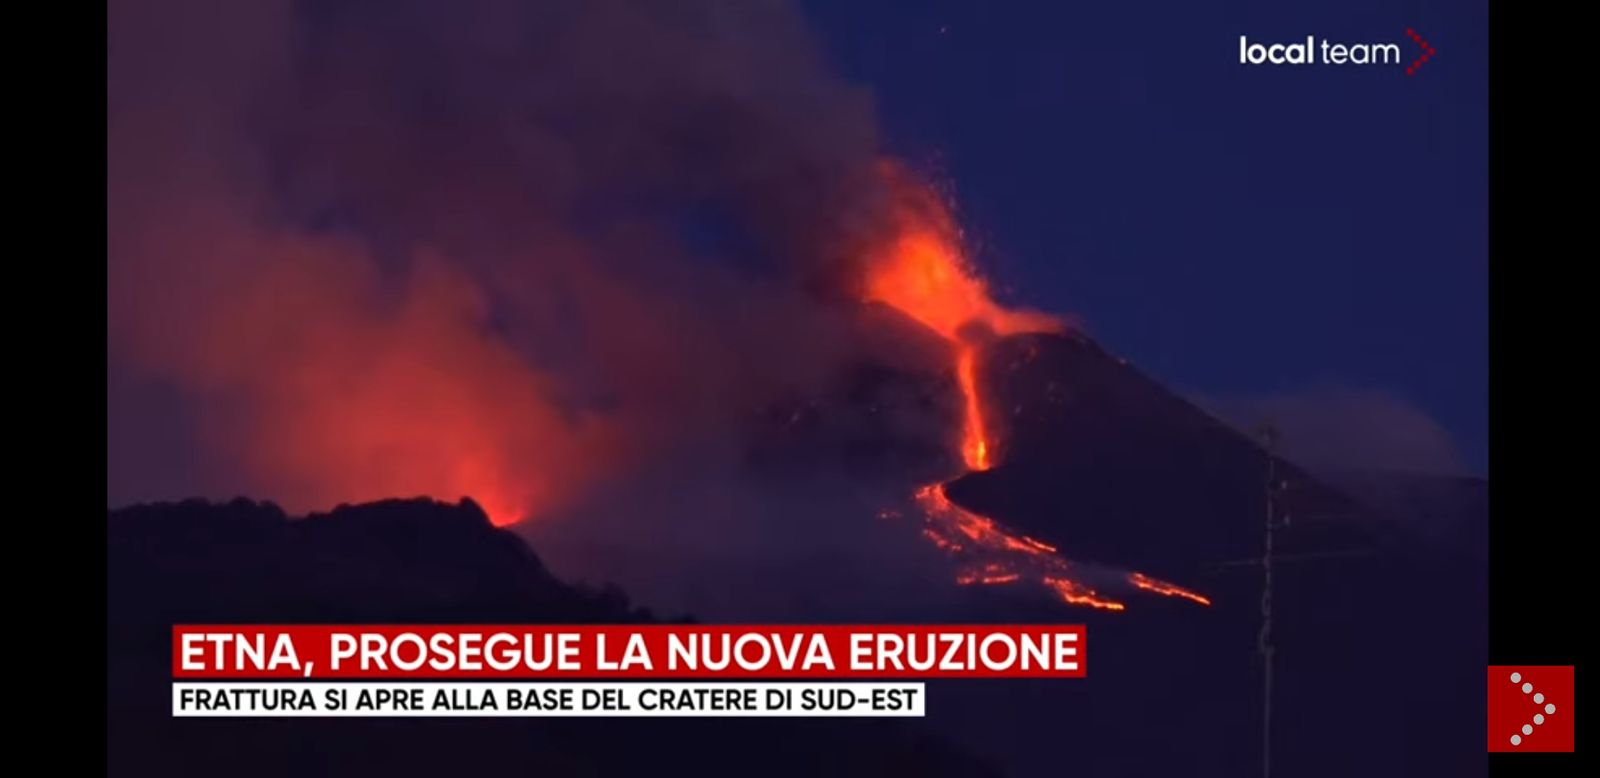 Etna SEC- opening of a fracture at the base of the south-eastern crater - photo Local Team